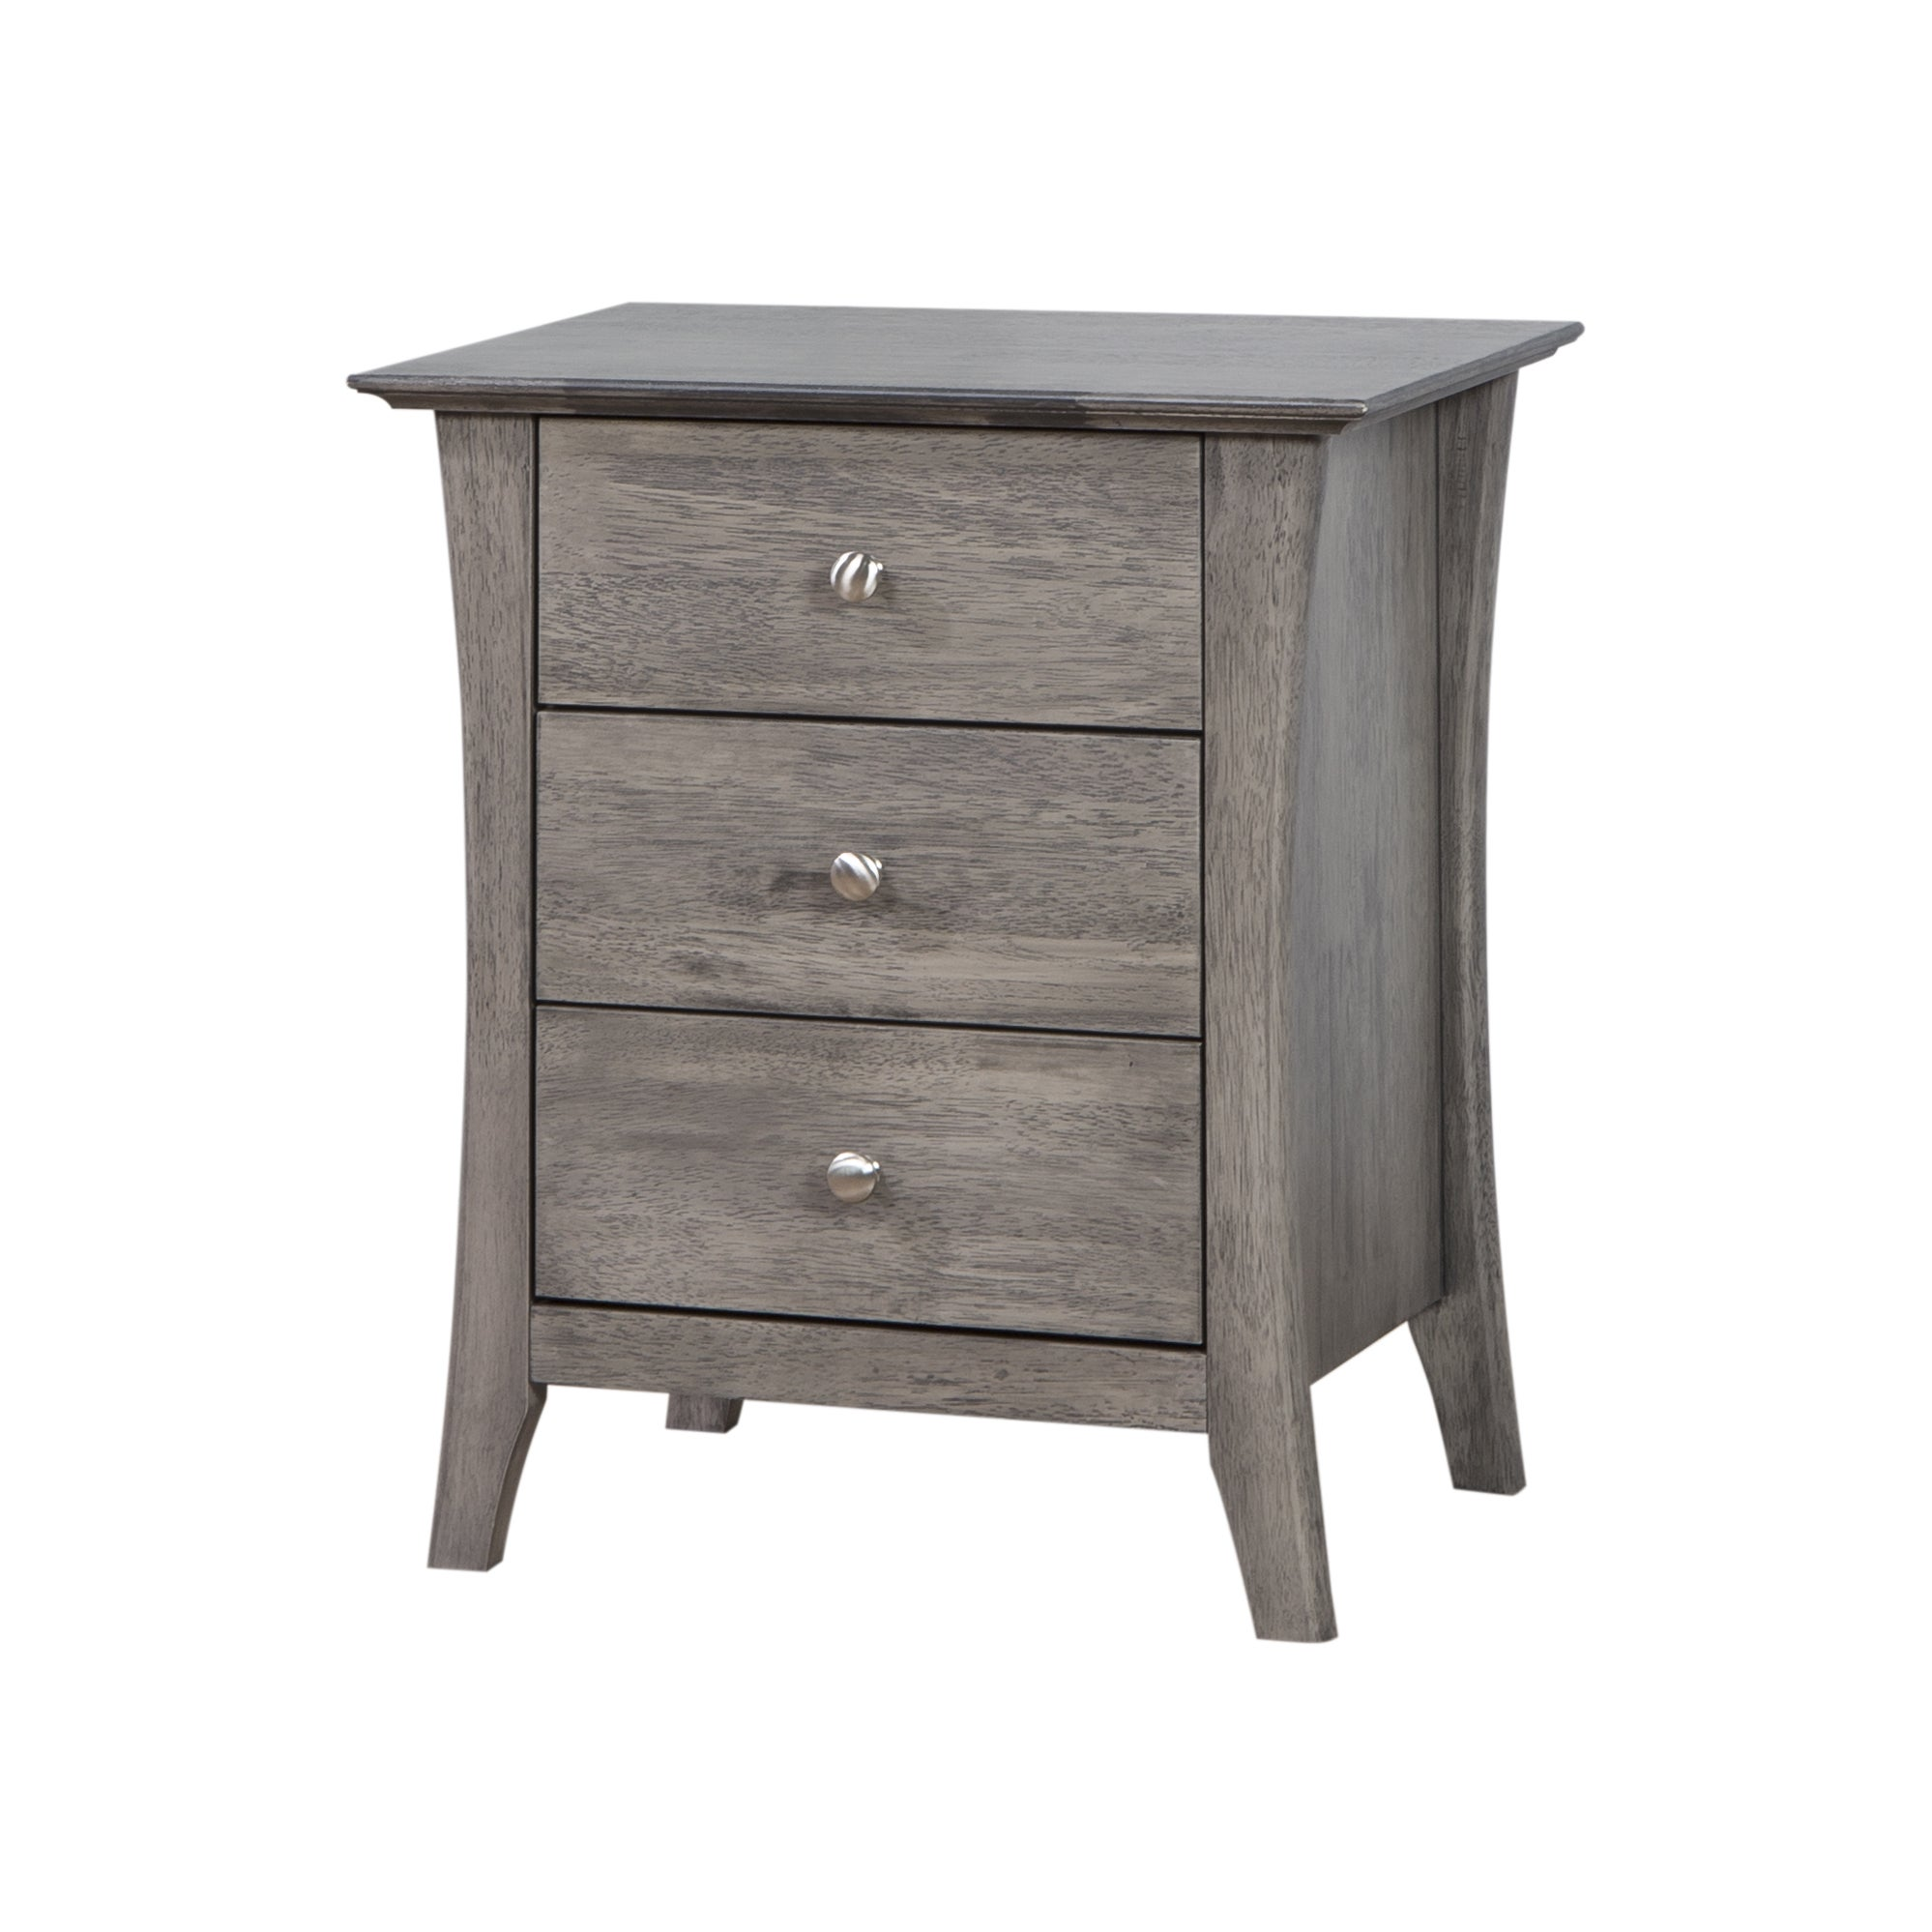 Copper Grove Vermont Stone Dark Burnt Grey 3 Drawer Bedside Table Free Shipping Today 10220624